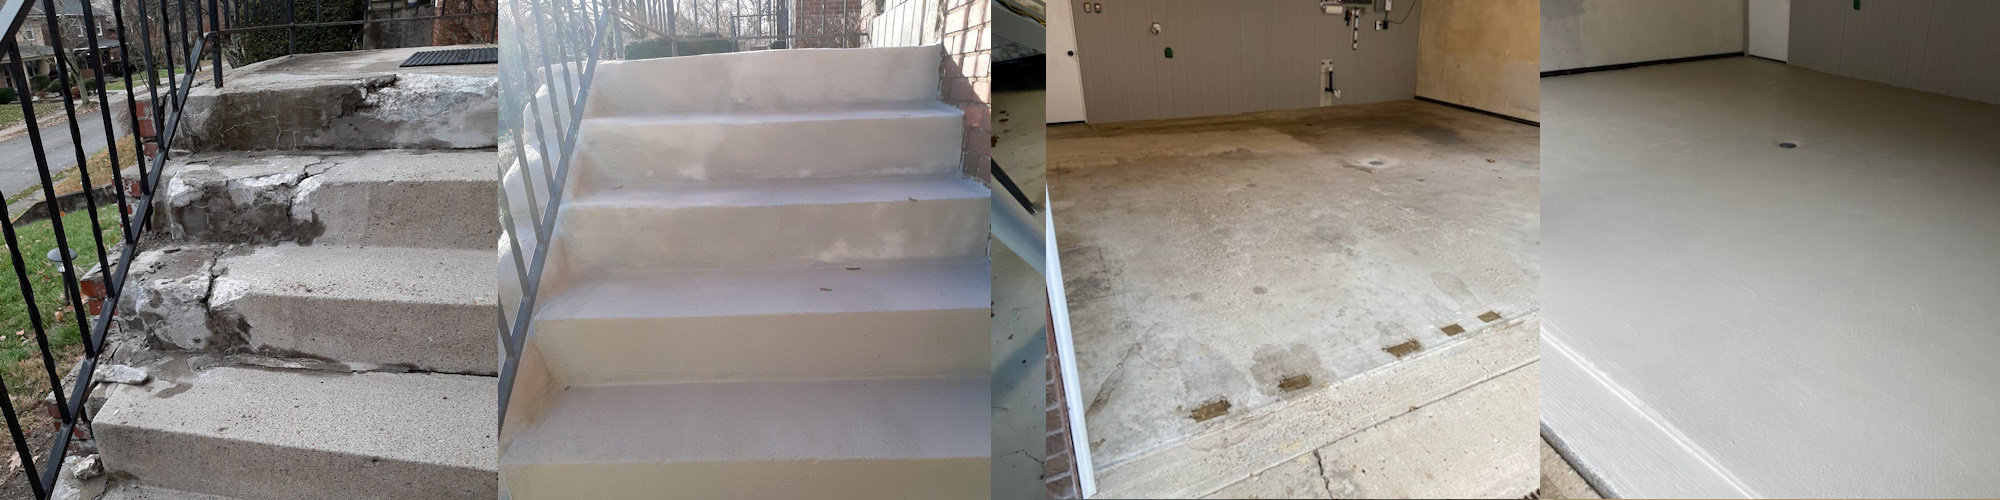 Foundation Stabilization, Concrete repair and Restoration, Power Wash and Sealing, Basement Moisture Prevention